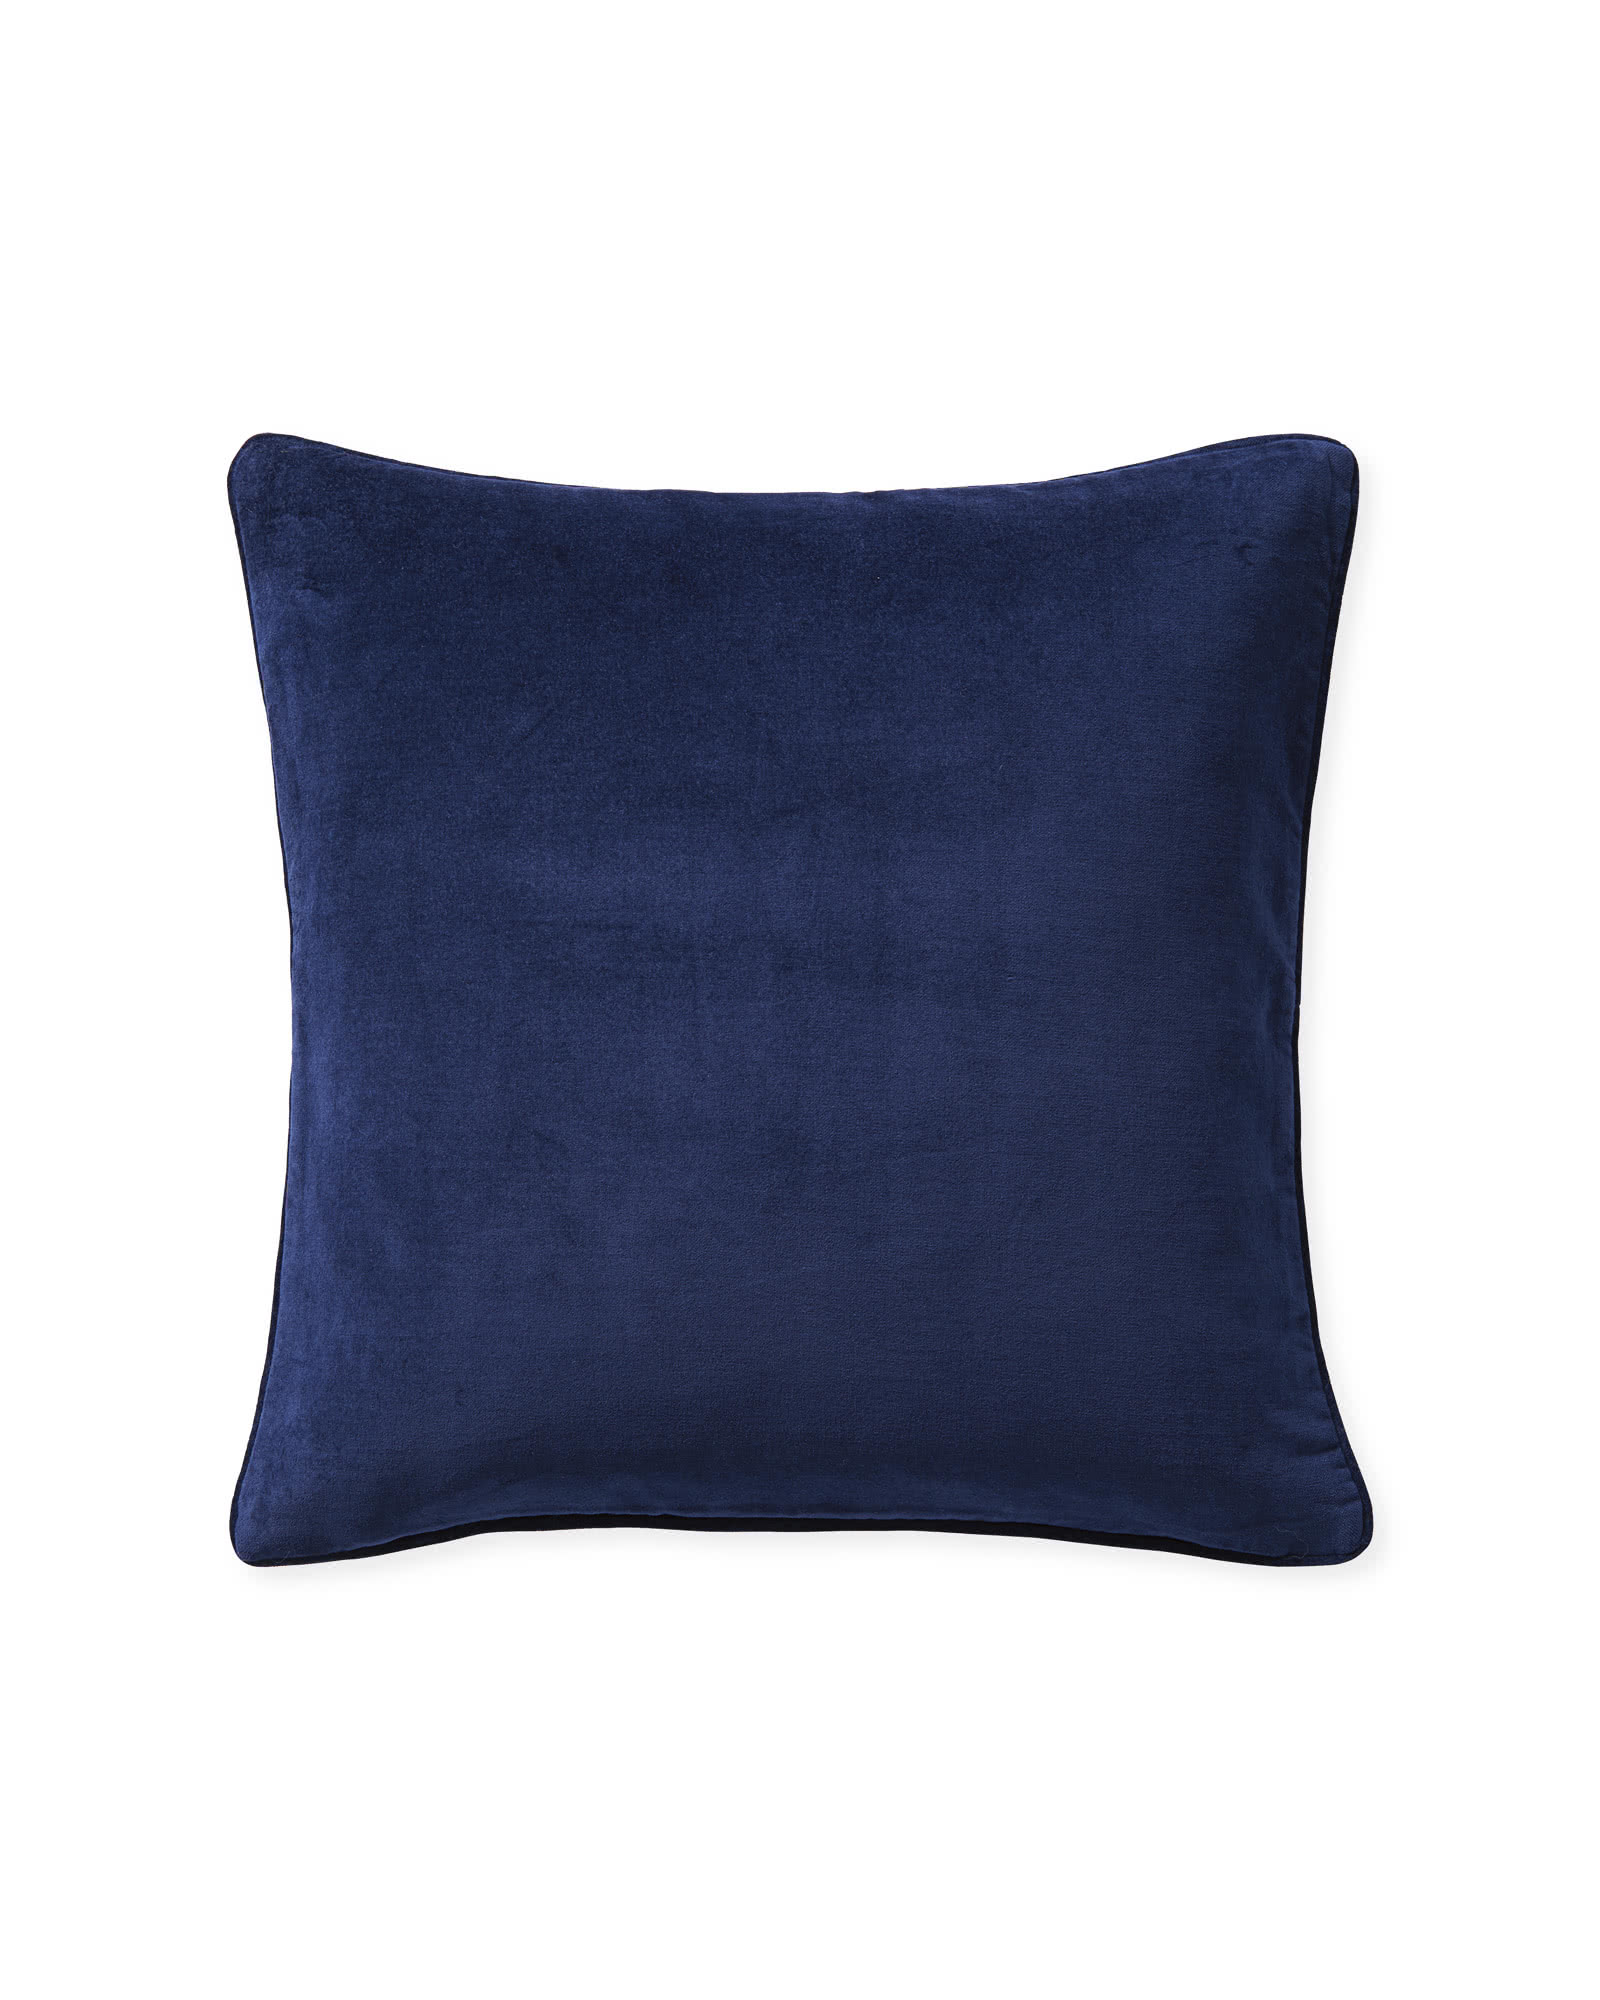 Bedwell Pillow Cover, Navy